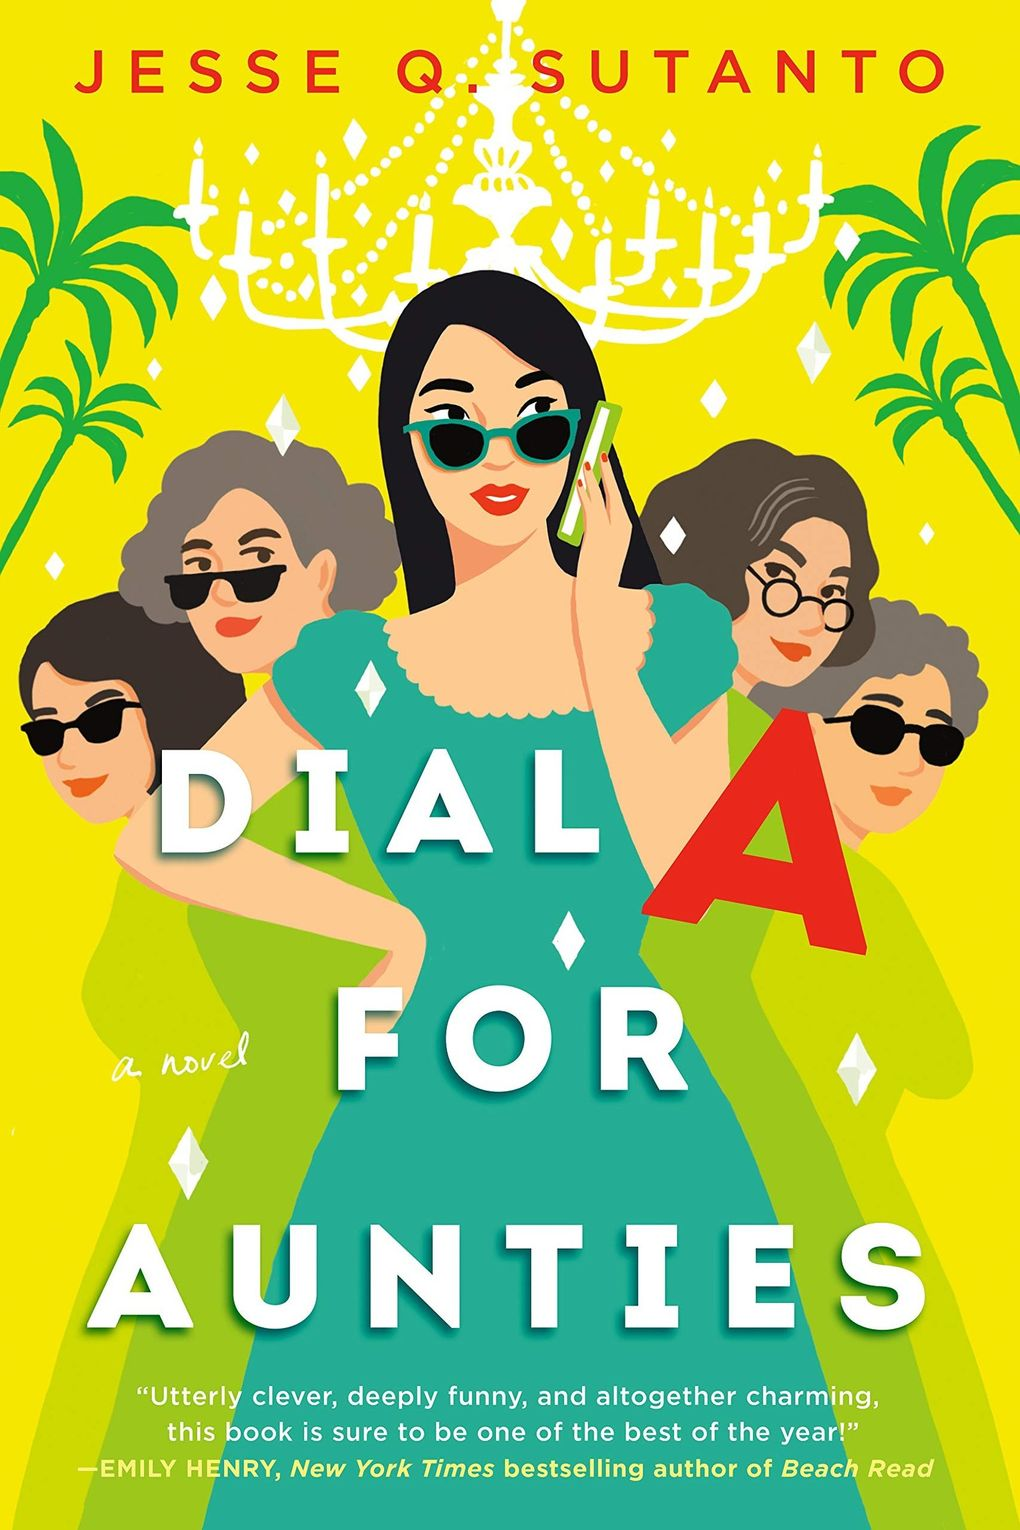 """""""Dial A for Aunties"""" by Jesse Q. Sutanto (Penguin Random House)"""